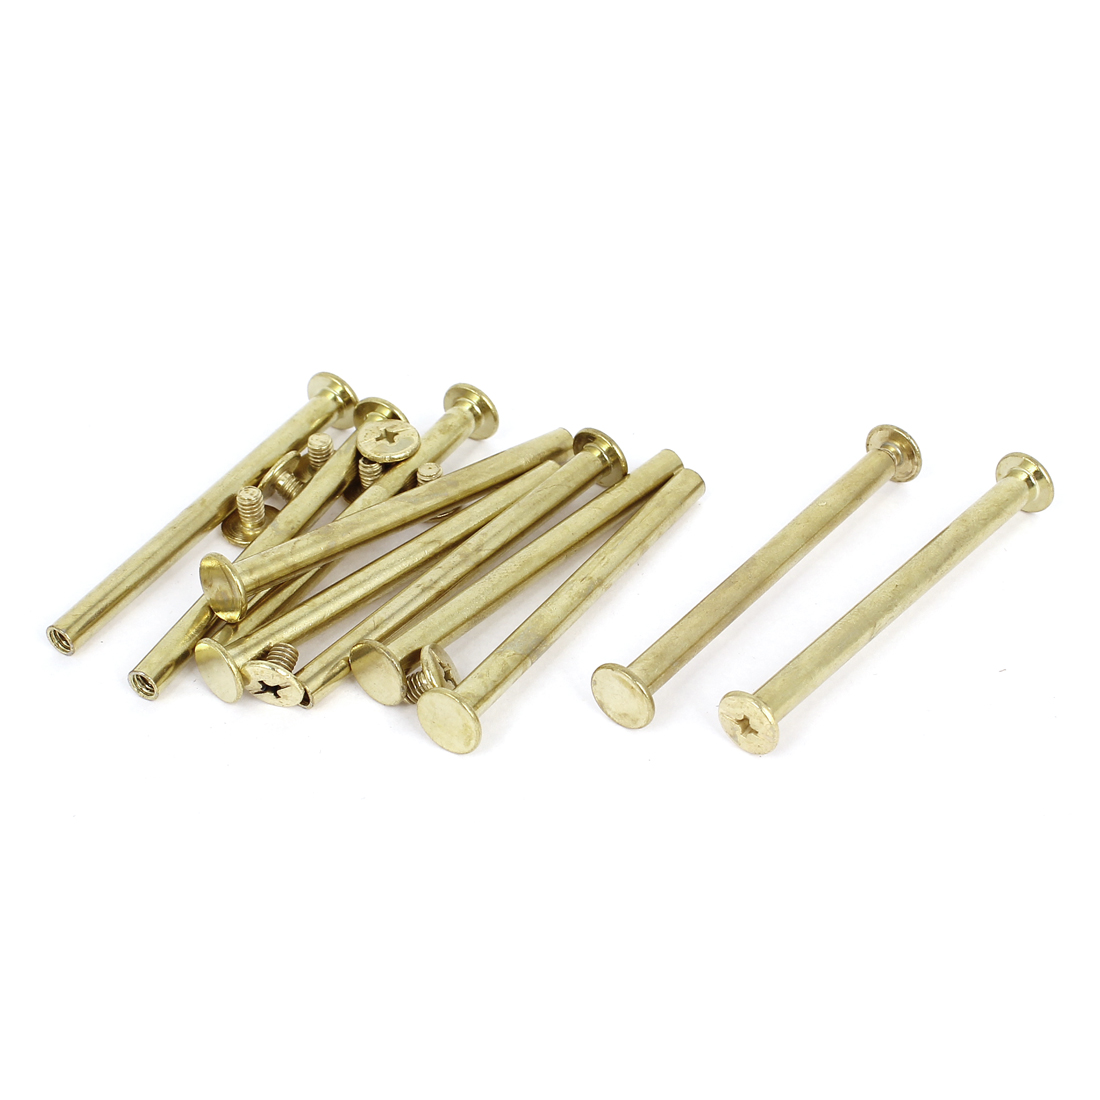 Brass Plated 5x60mm Binding Chicago Screw Post 10pcs for Leather Scrapbook